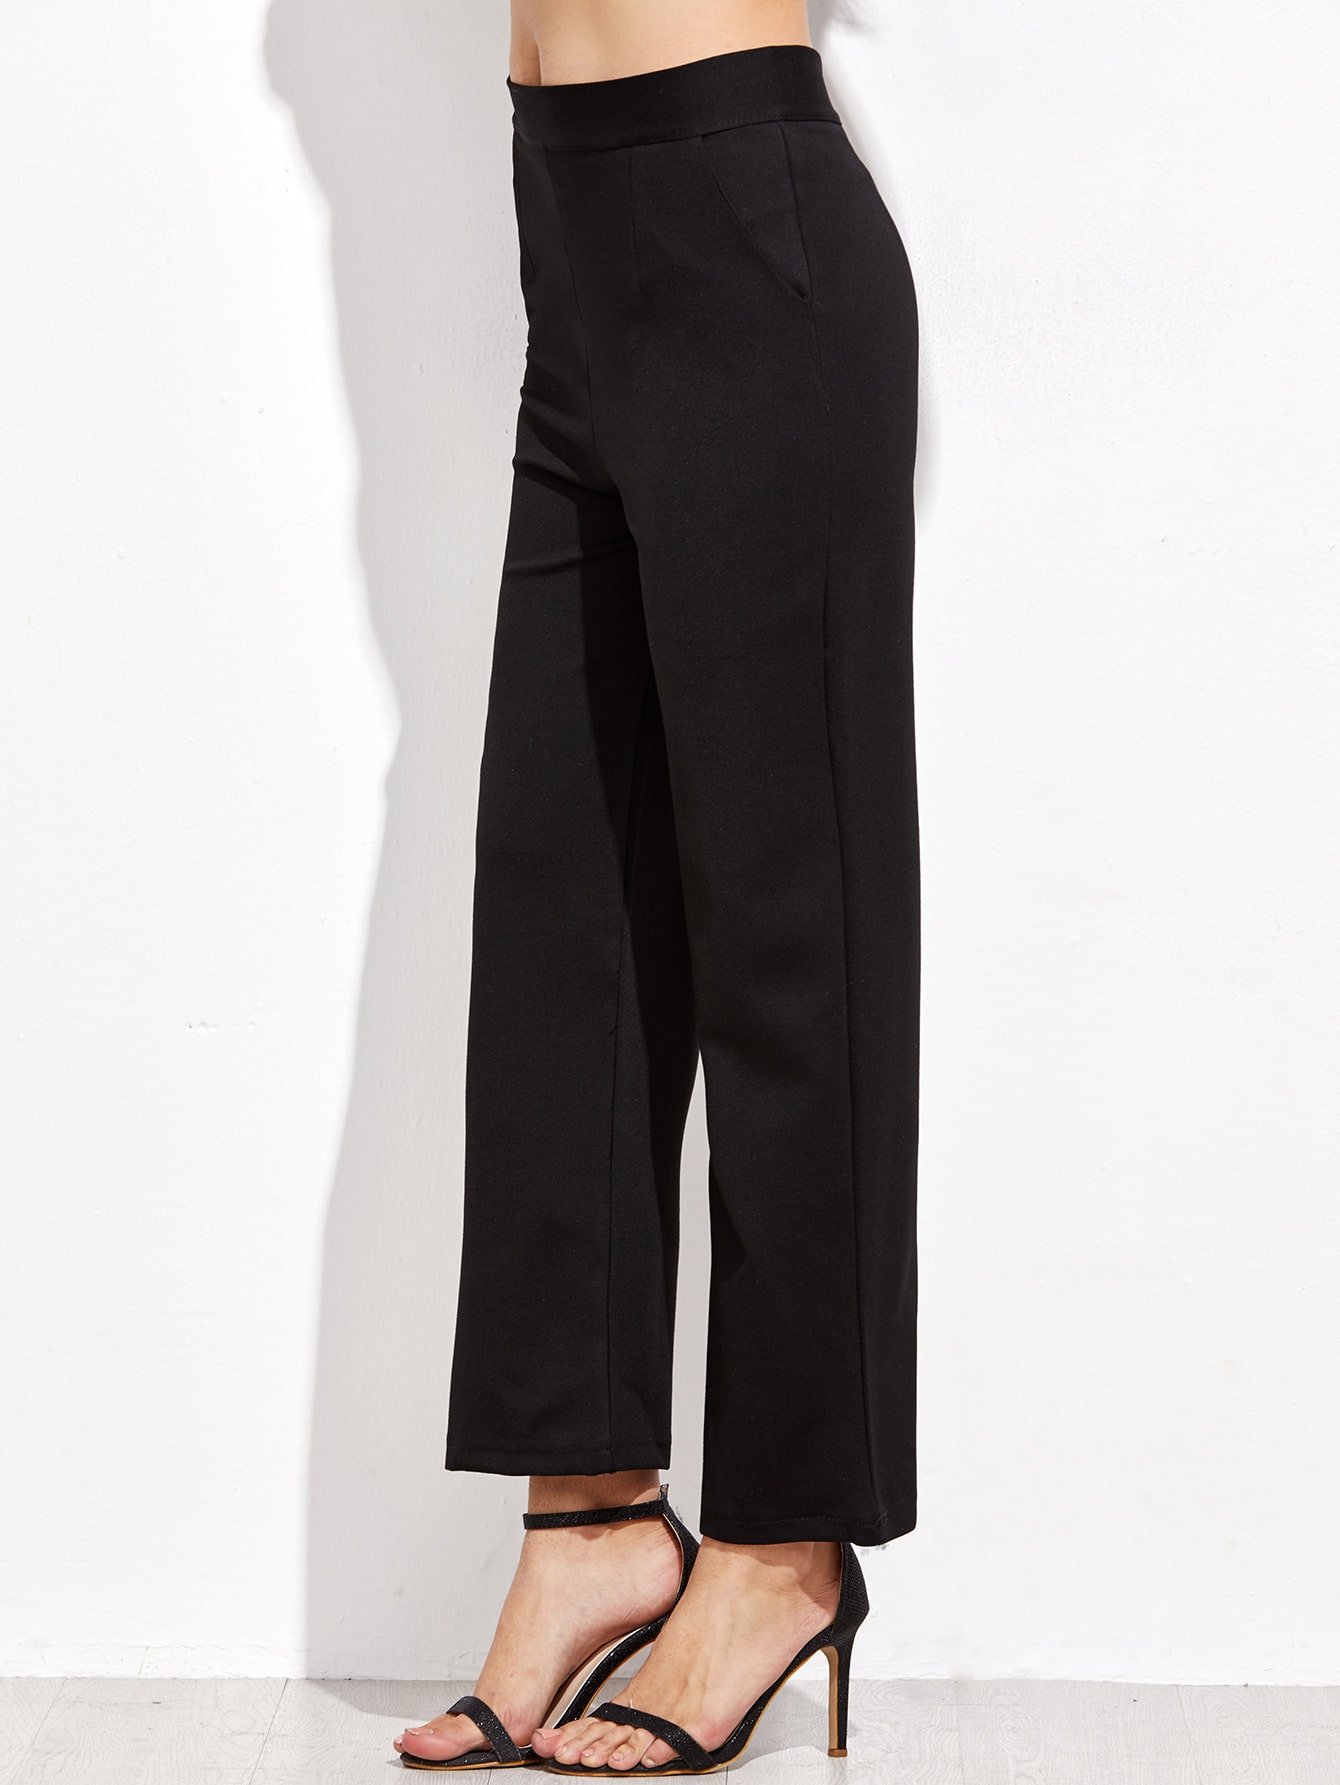 Shop for BLACK L Zipper Fly Wide Leg Pants online at $ and discover fashion at atrociouslf.gq Cheapest and Latest women & men fashion site including categories such as dresses, shoes, bags and jewelry with free shipping all over the atrociouslf.gq: Rosegal.